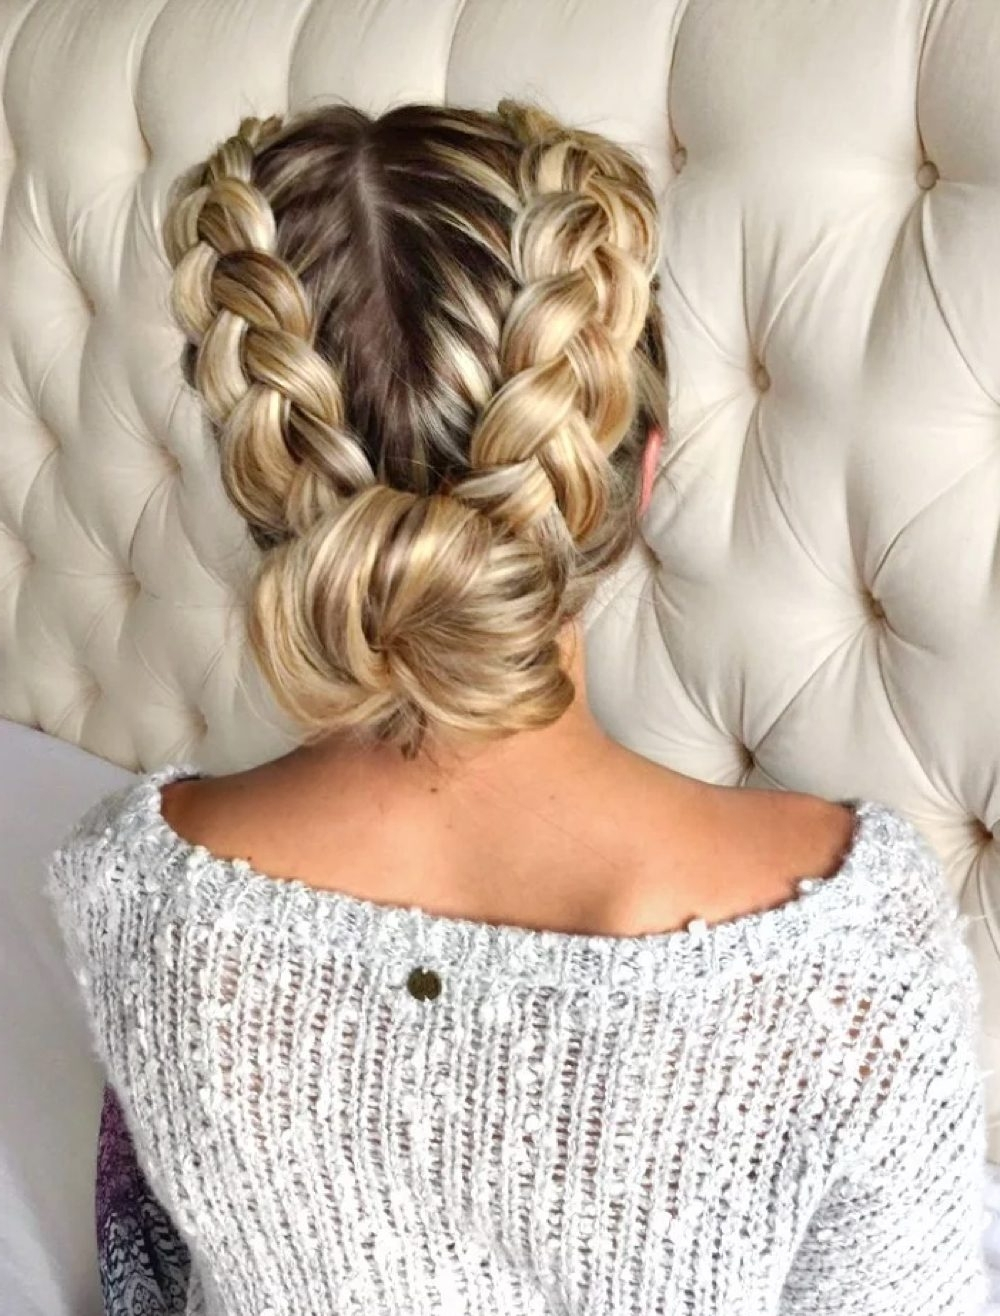 28 Gorgeous Braided Updo Ideas For 2018 In Most Recent Romantic Curly And Messy Two French Braids Hairstyles (View 2 of 15)